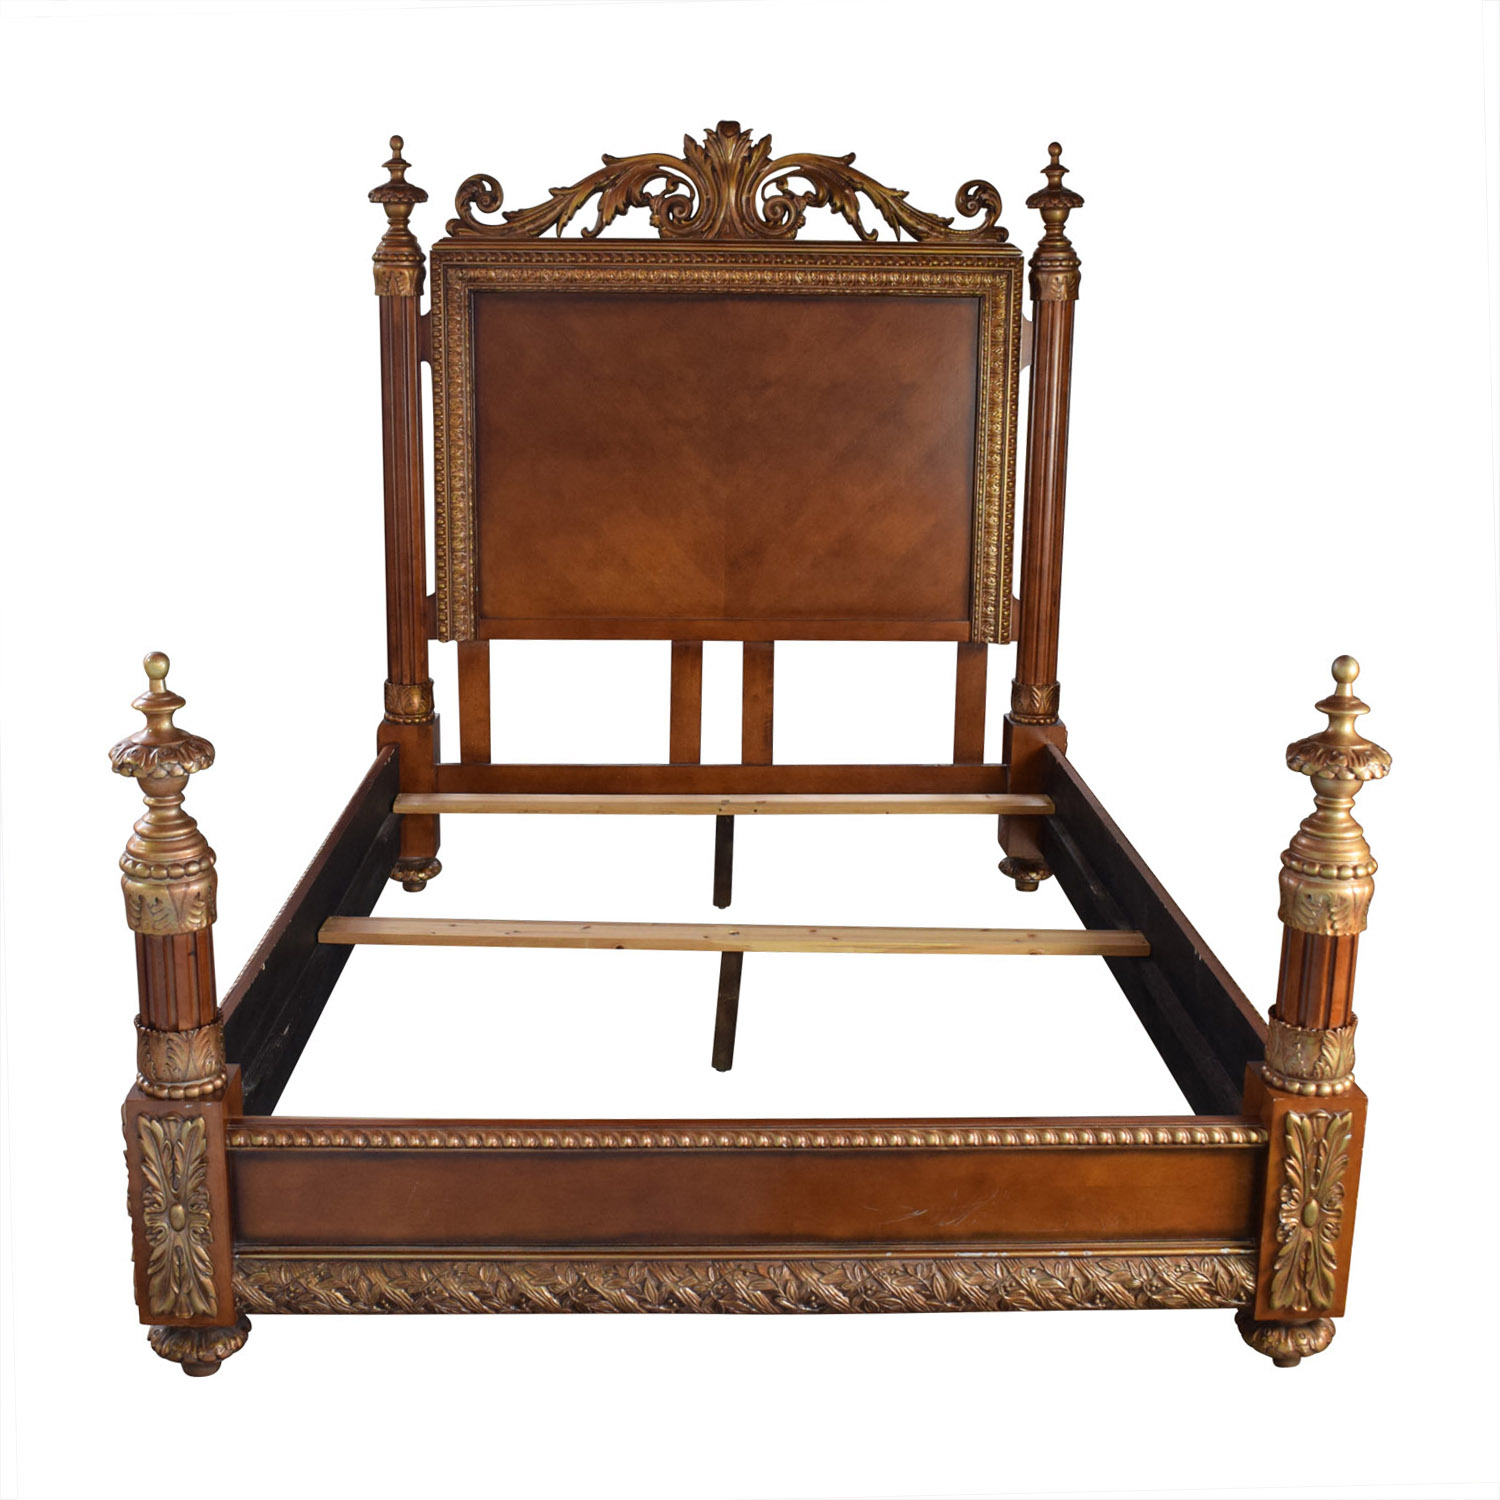 Horchow Horchow Carved Wood Semi-Four Poster Queen Bed Frame price